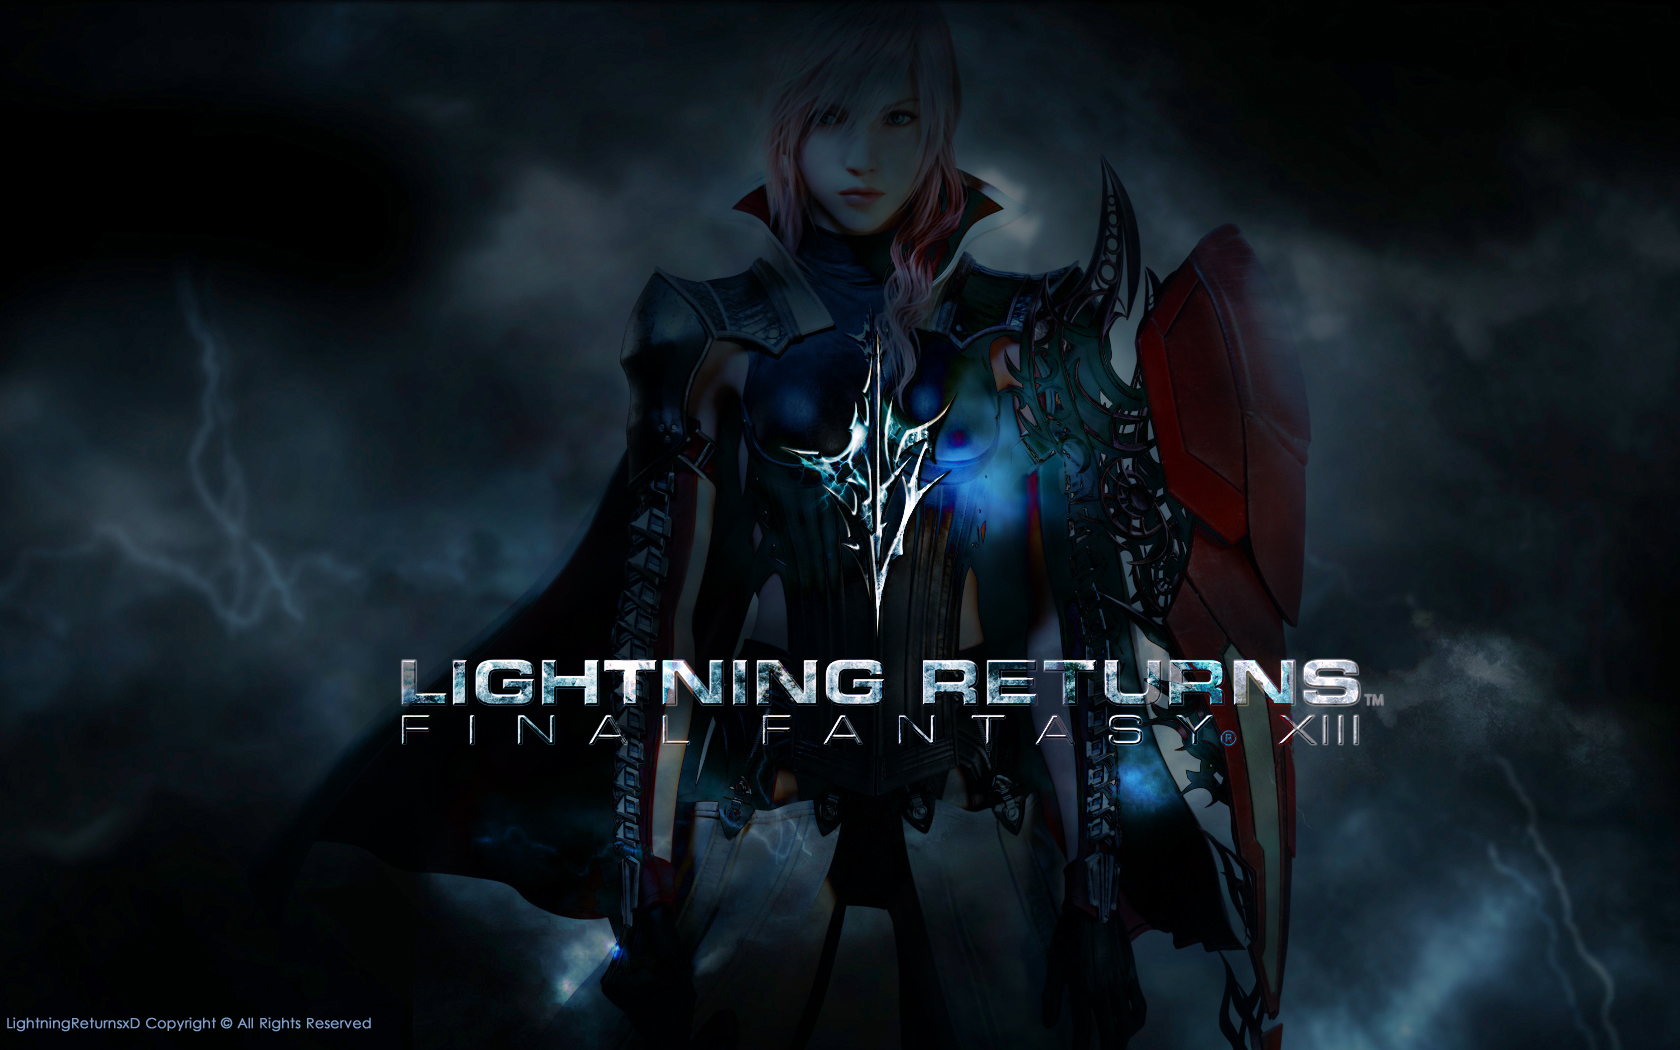 Free Download Lightning Returns Final Fantasy Xiii 1680x1050 For